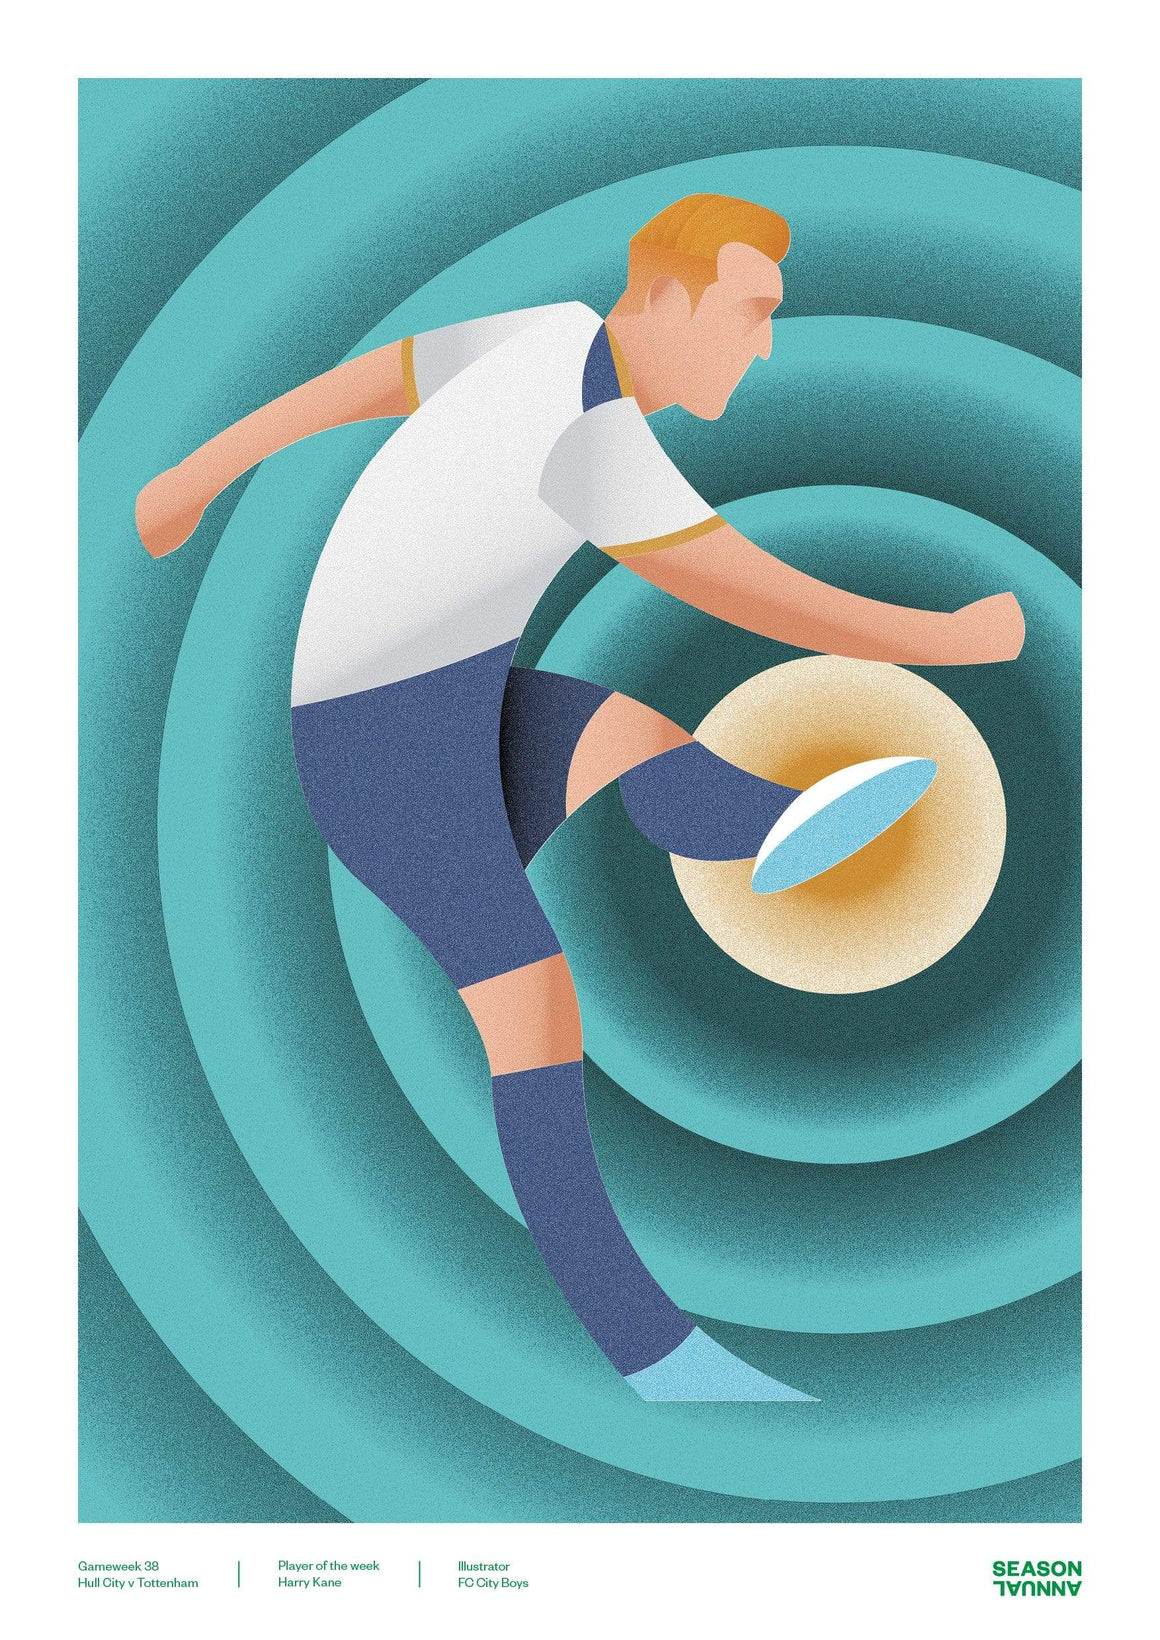 Season Annual A3 poster of Harry Kane celebrating his performance for Spurs v Hull City